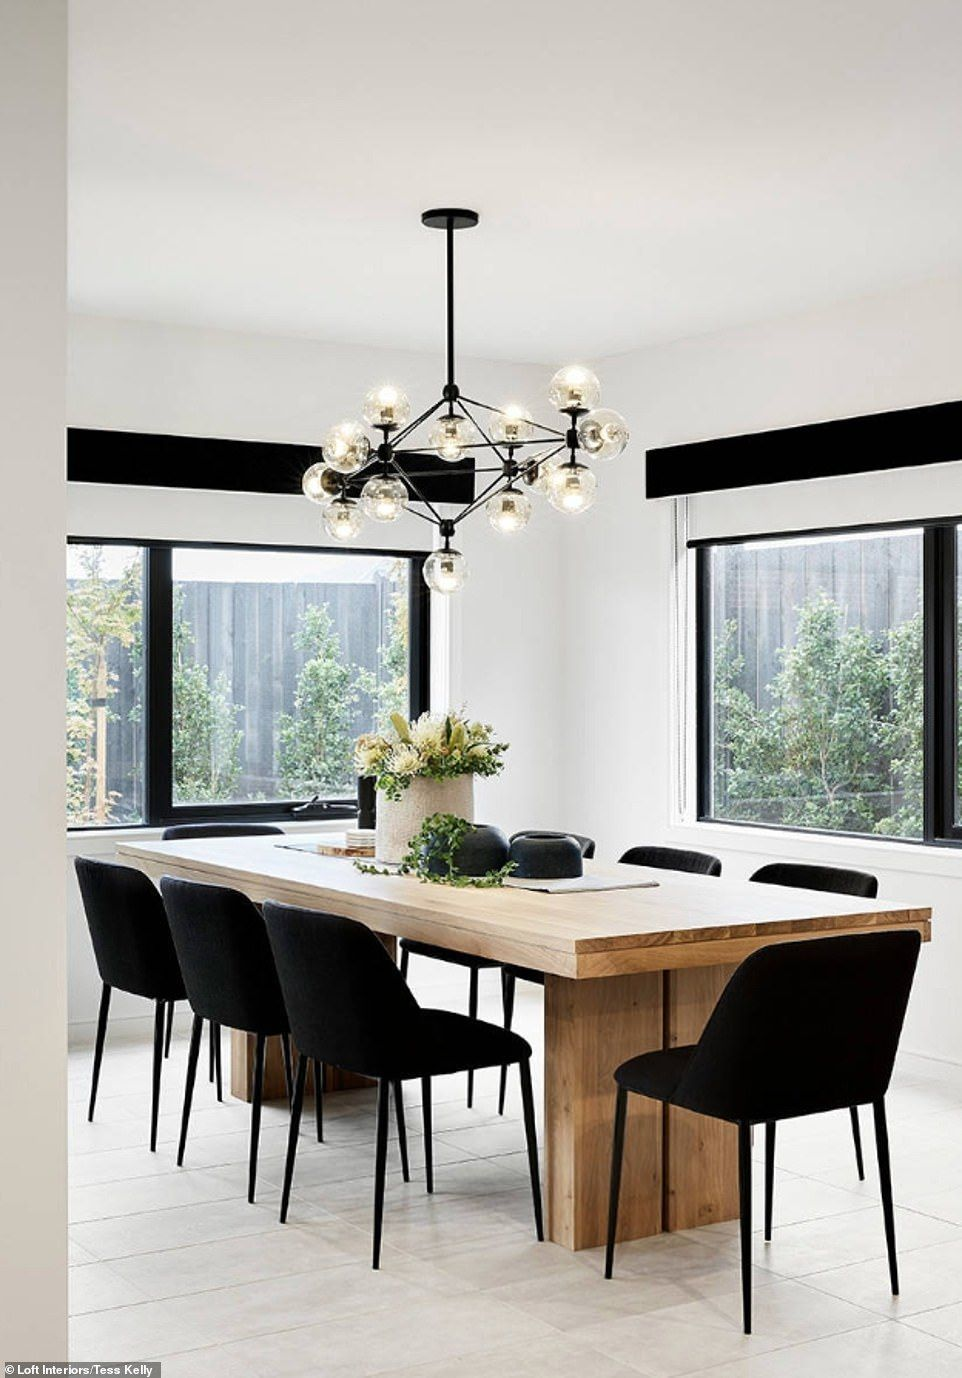 Leading Online Renovation And Interiors Website Houzz Has Announced Its Best Of Houzz 2020 Aust White Dining Room Dining Room Interiors Dining Room Inspiration